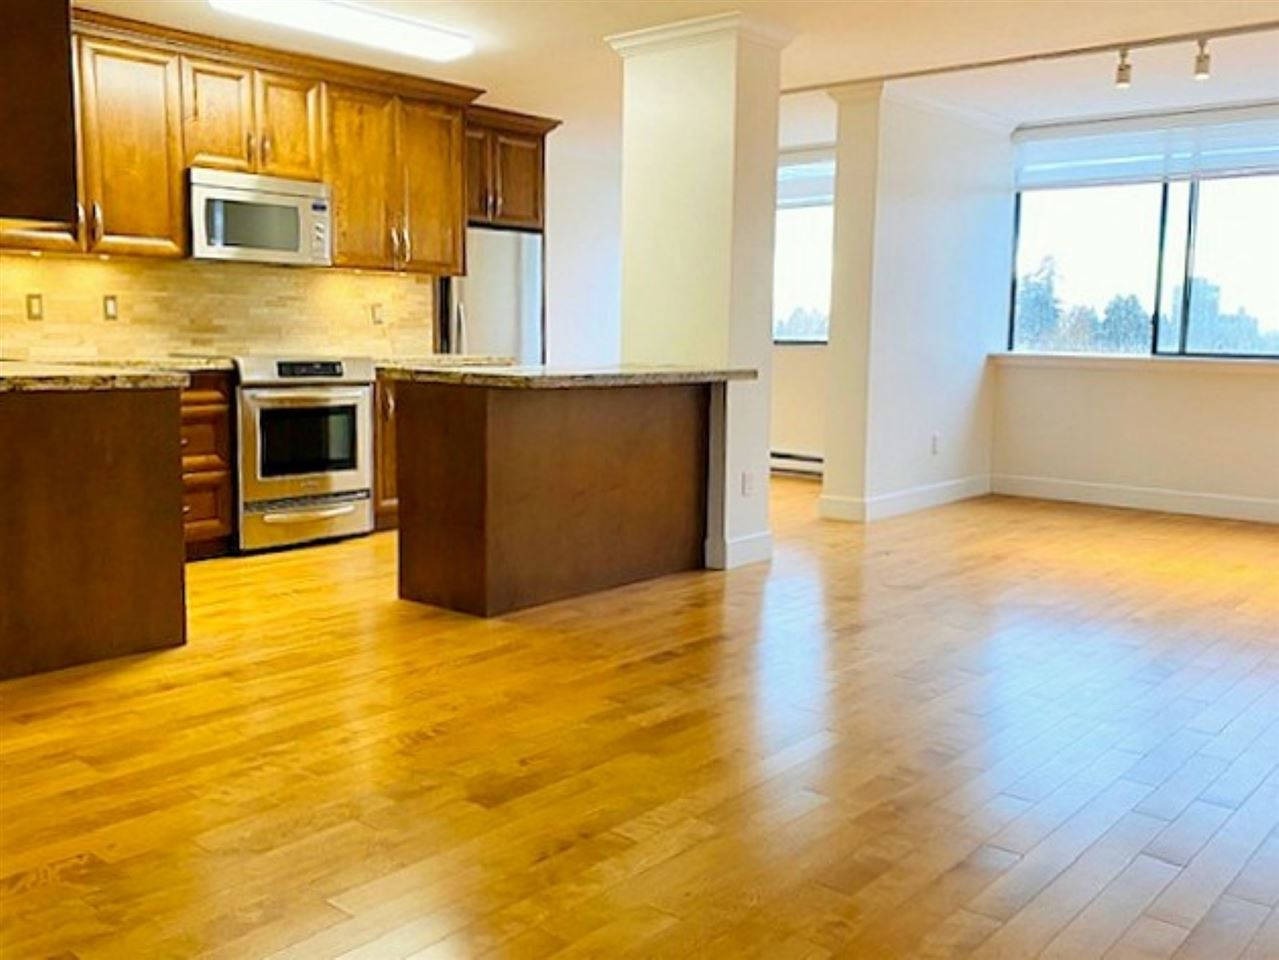 302 460 14TH STREET - Ambleside Apartment/Condo for sale, 2 Bedrooms (R2501787) - #3